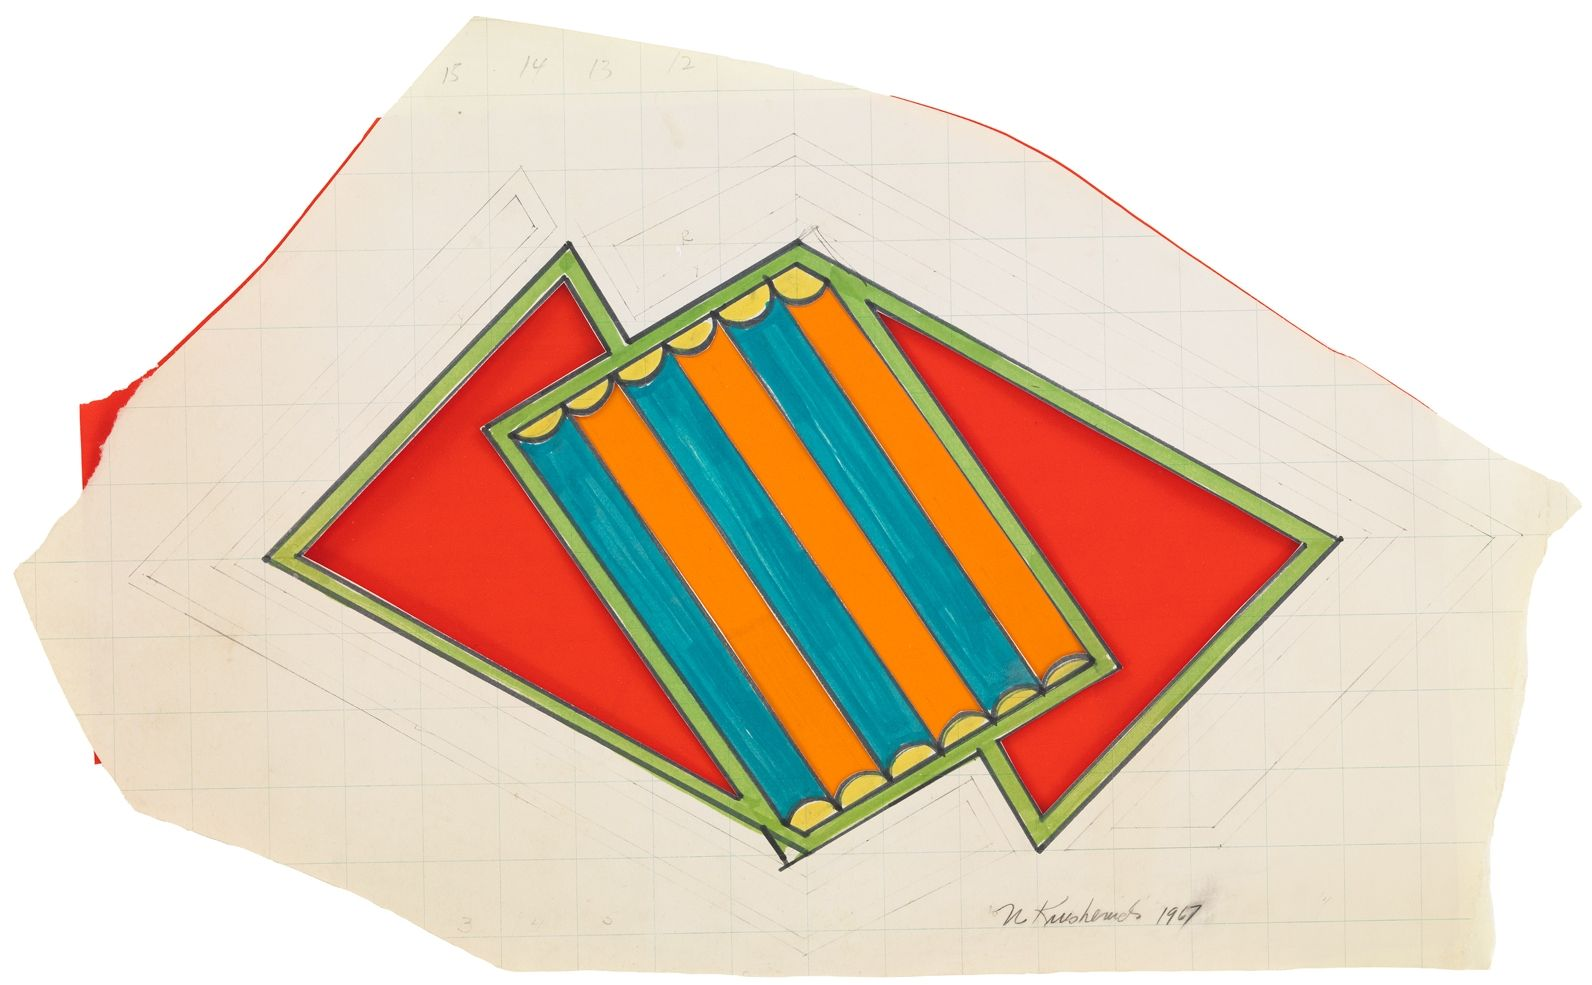 Geometric drawing with two red triangles and blue and orange striped rectangle